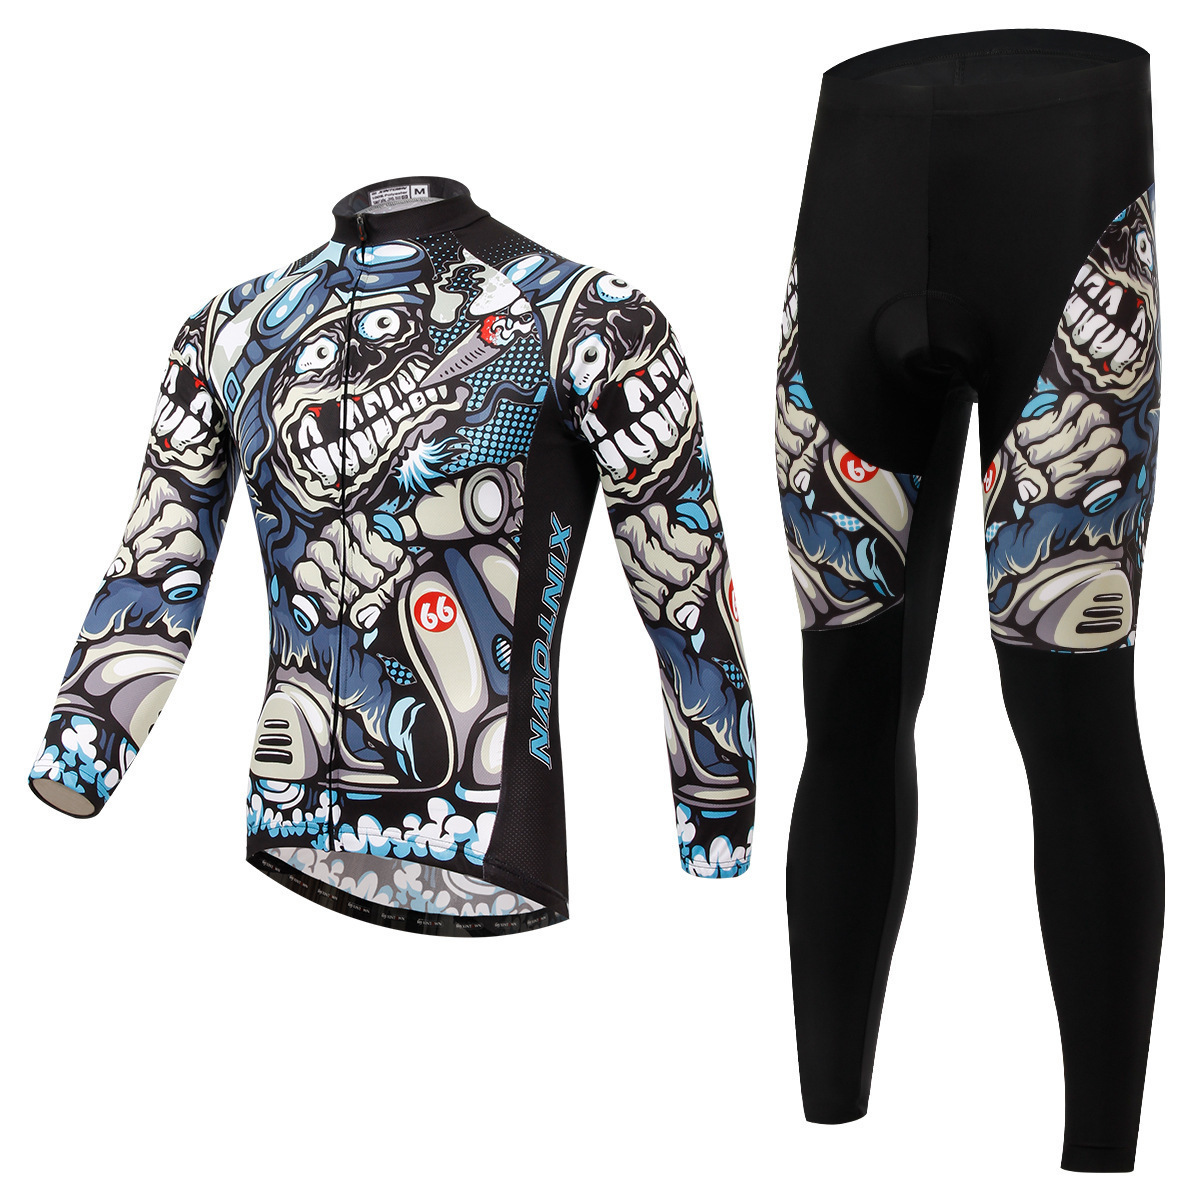 XINTOWN Spring Autumn Cycling Jersey Sets Long Sleeve Jerseys Cycling Pants Sest Bike Bicycle Cycling Clothes UV rResistant xintown mens cycling jerseys set long sleeves mtb jersey pad bike bicycle jacket sets shirts wear uniforms cigar skull s 4xl